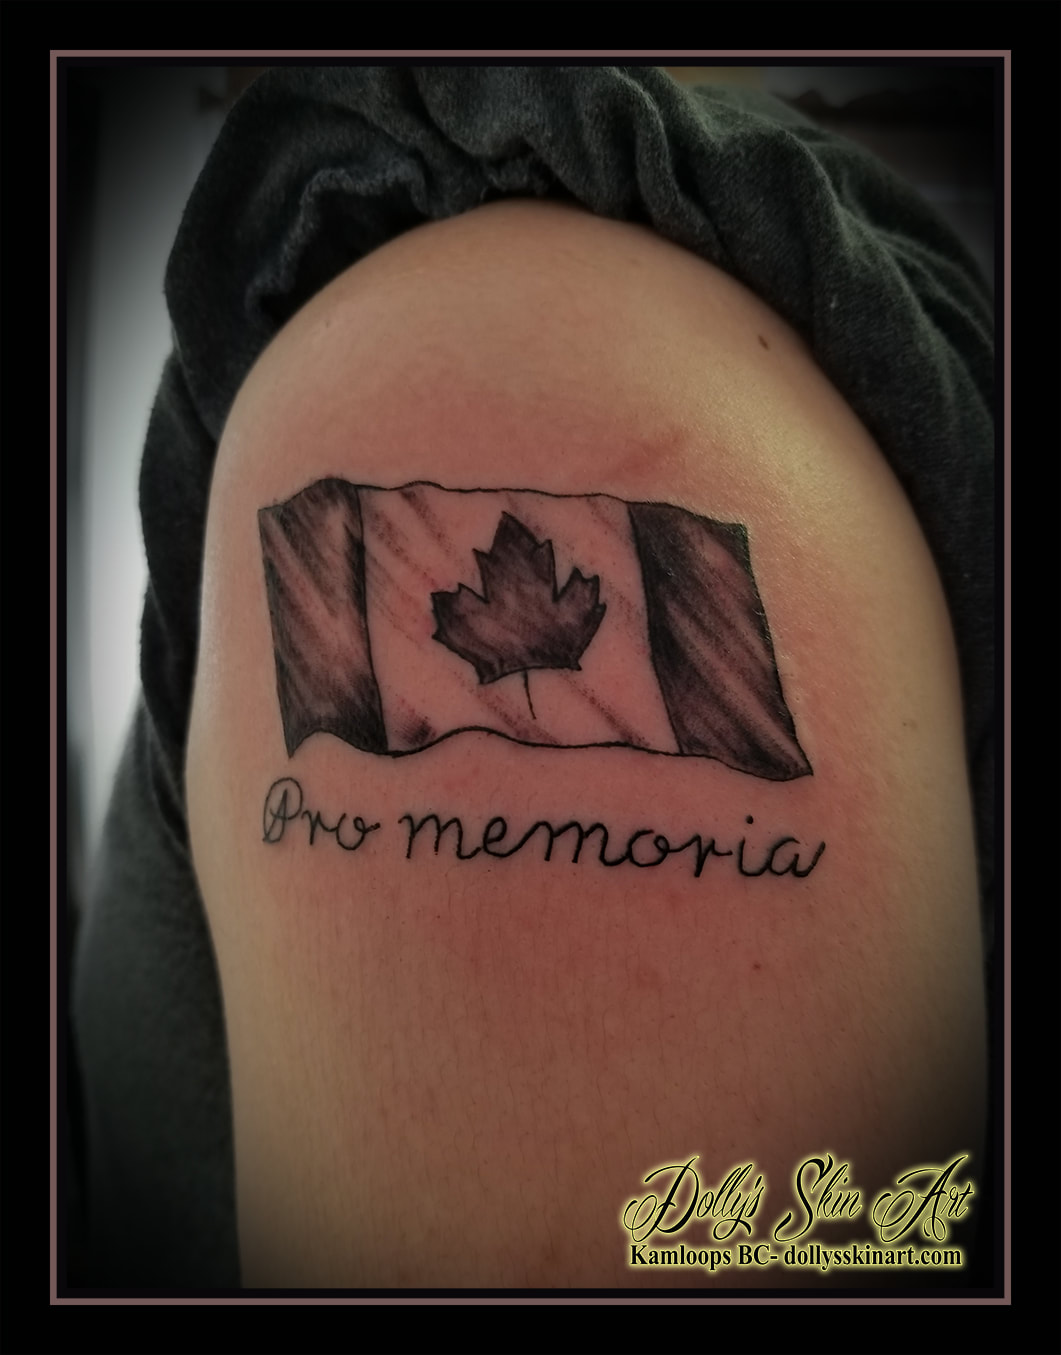 canada flag canadian black and grey shading pro memoria lettering font script shoulder souvenir tattoo kamloops tattoo dolly's skin art